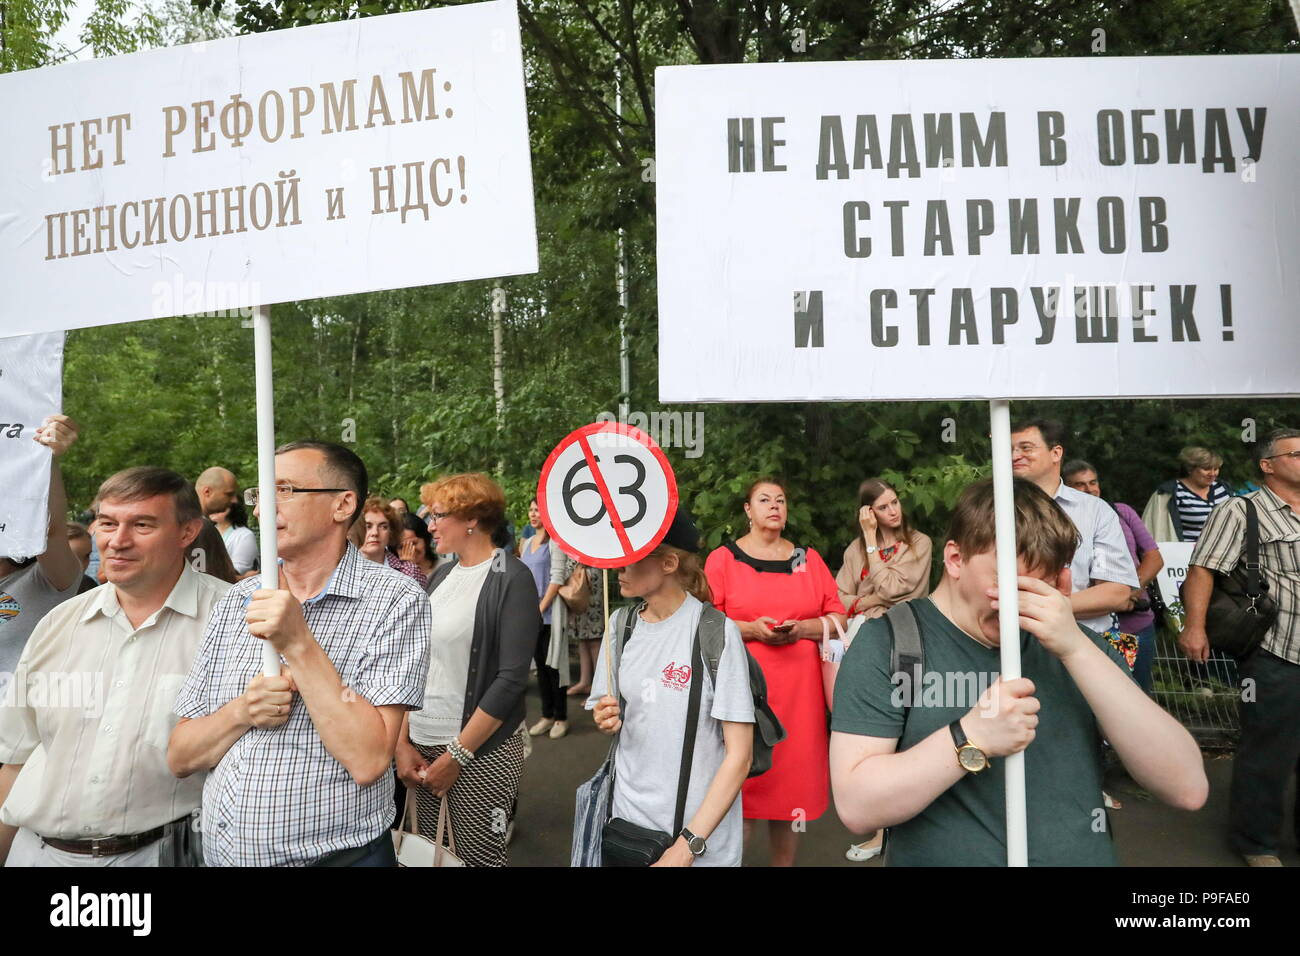 Moscow, Russia. 18th July, 2018. MOSCOW, RUSSIA - JULY 18, 2018: People take part in Moscow's Sokolniki Hyde Park rally against a Russian government proposal to raise the retirement age from 60 to 65 for men, and from 55 to 63 for women within the next two decades. Sergei Savostyanov/TASS Credit: ITAR-TASS News Agency/Alamy Live News - Stock Image